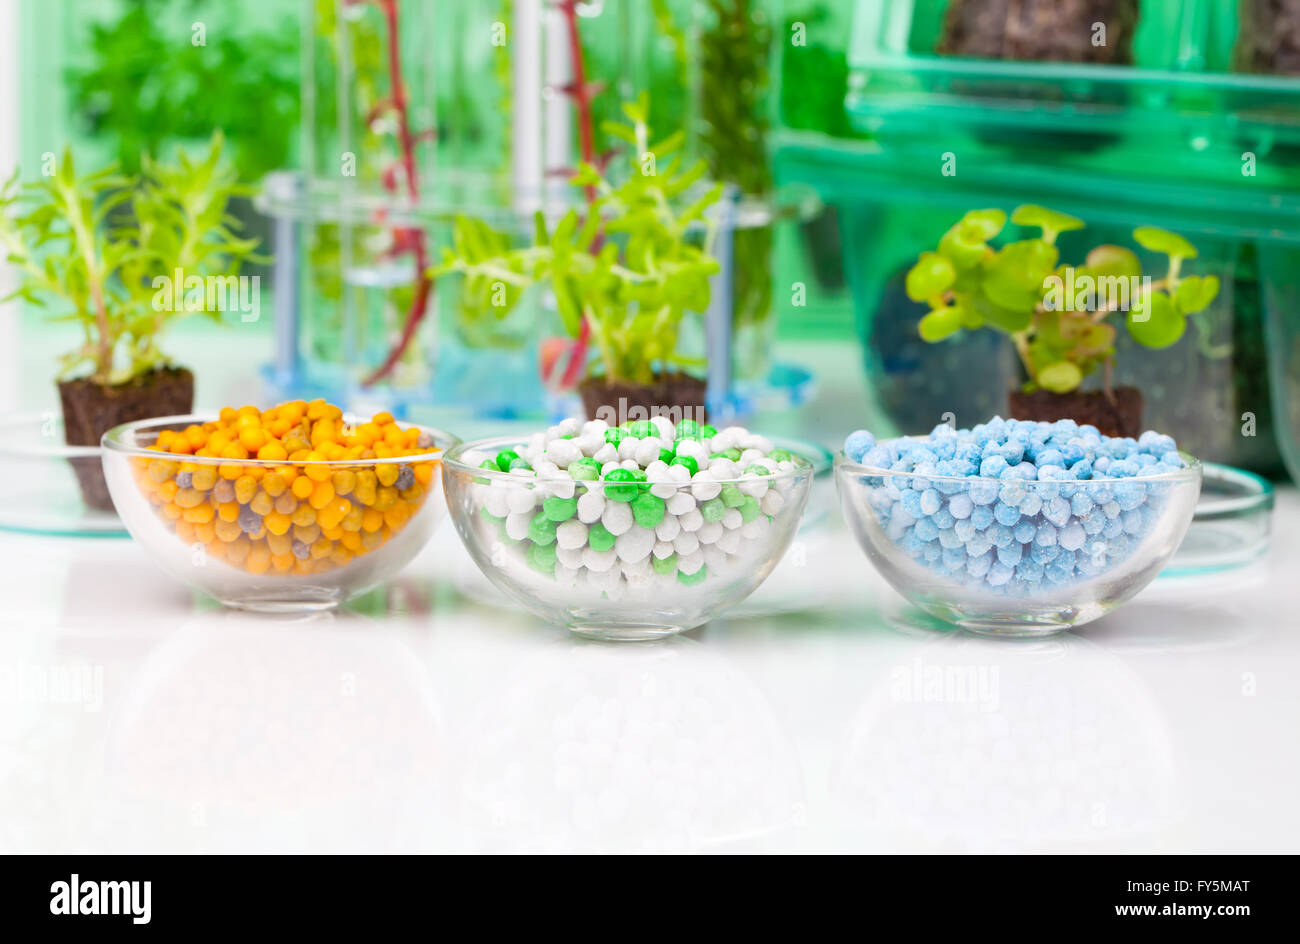 Different Mineral fertilizers in a chemical glass cup, on the white background - Stock Image